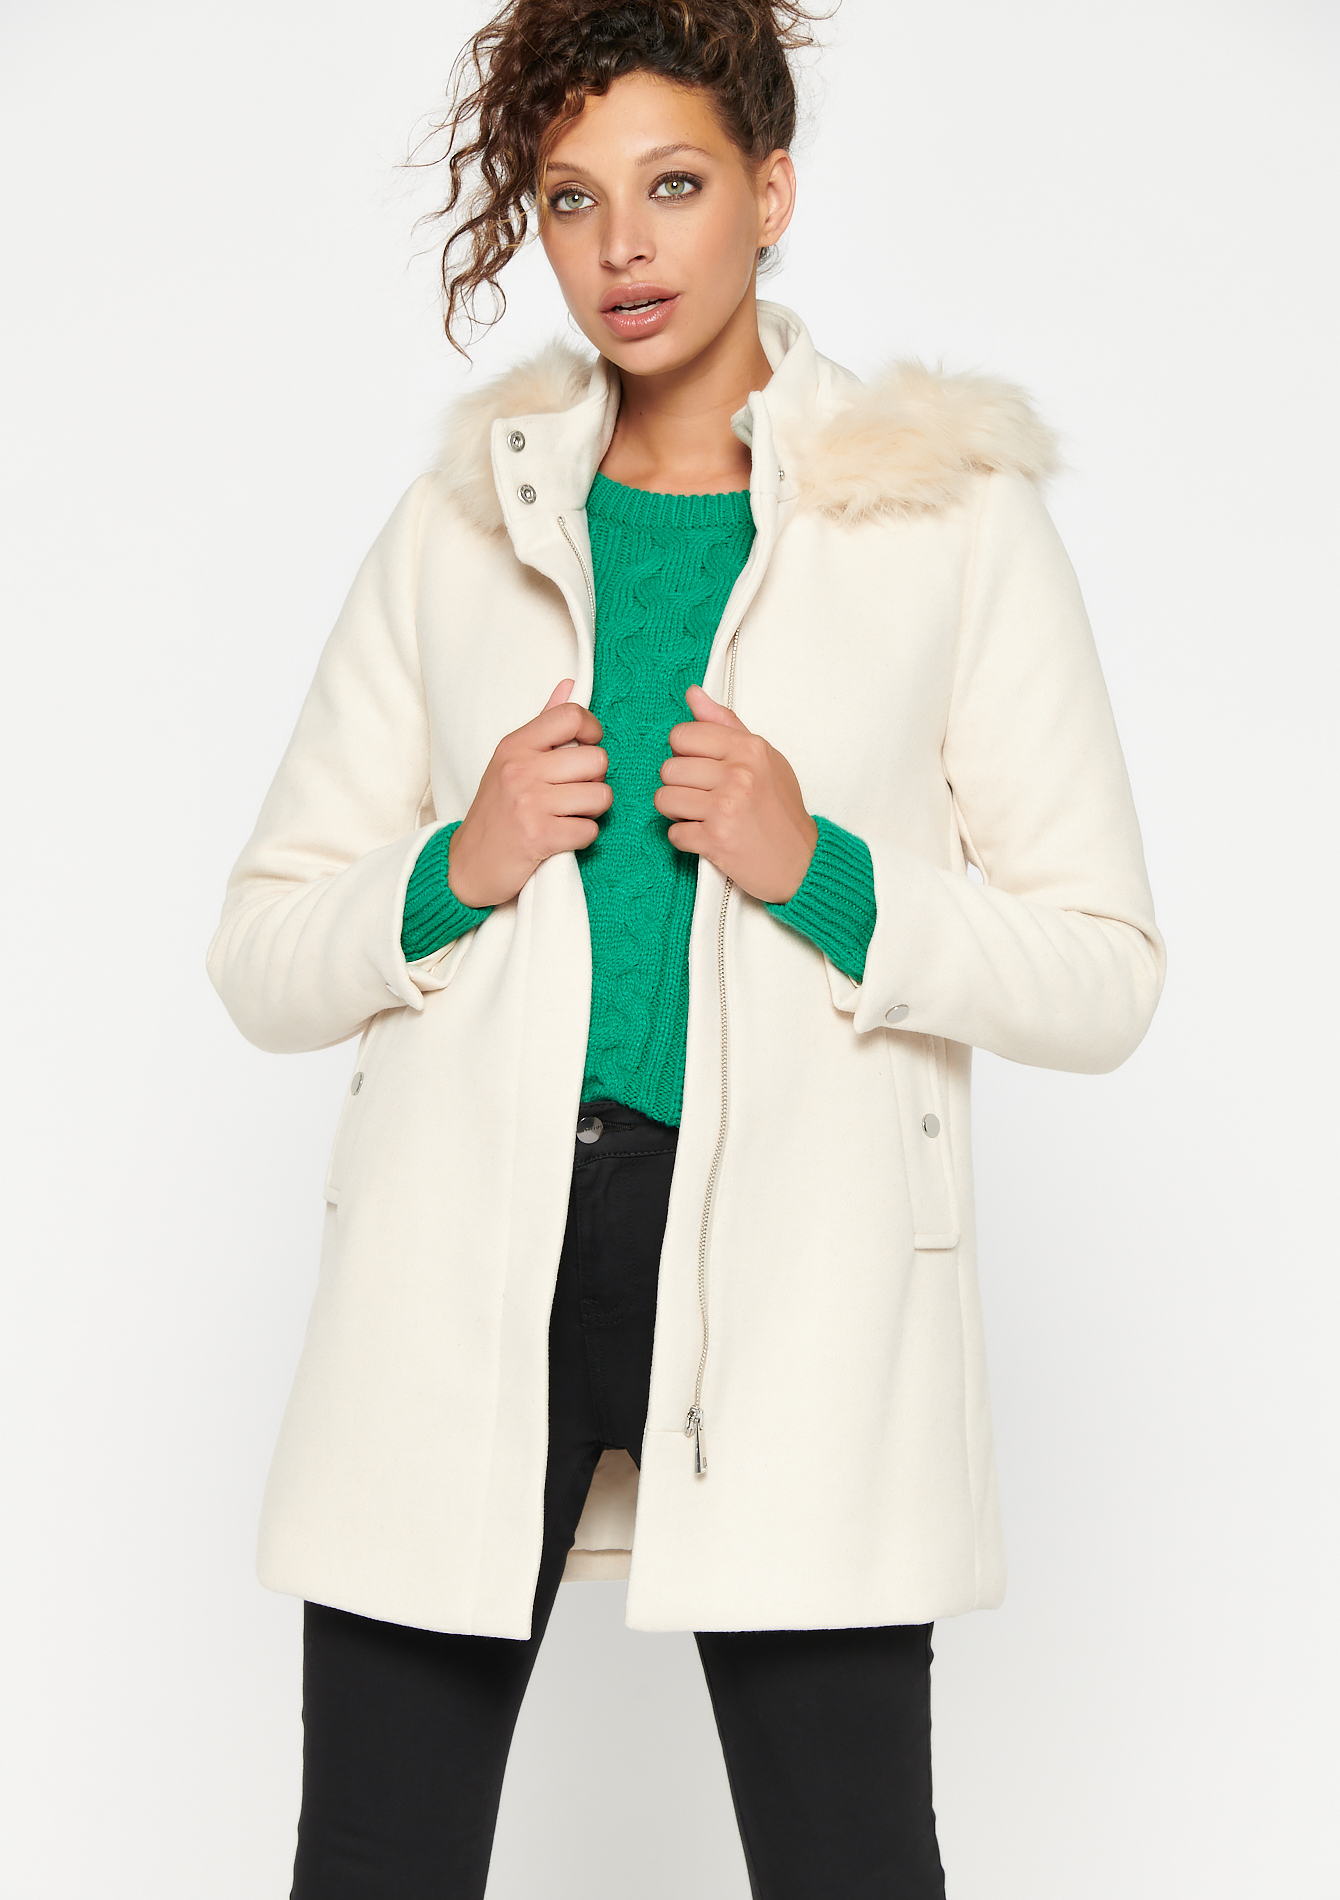 Hooded coat with fur collar - OFFWHITE - 23000283_1001